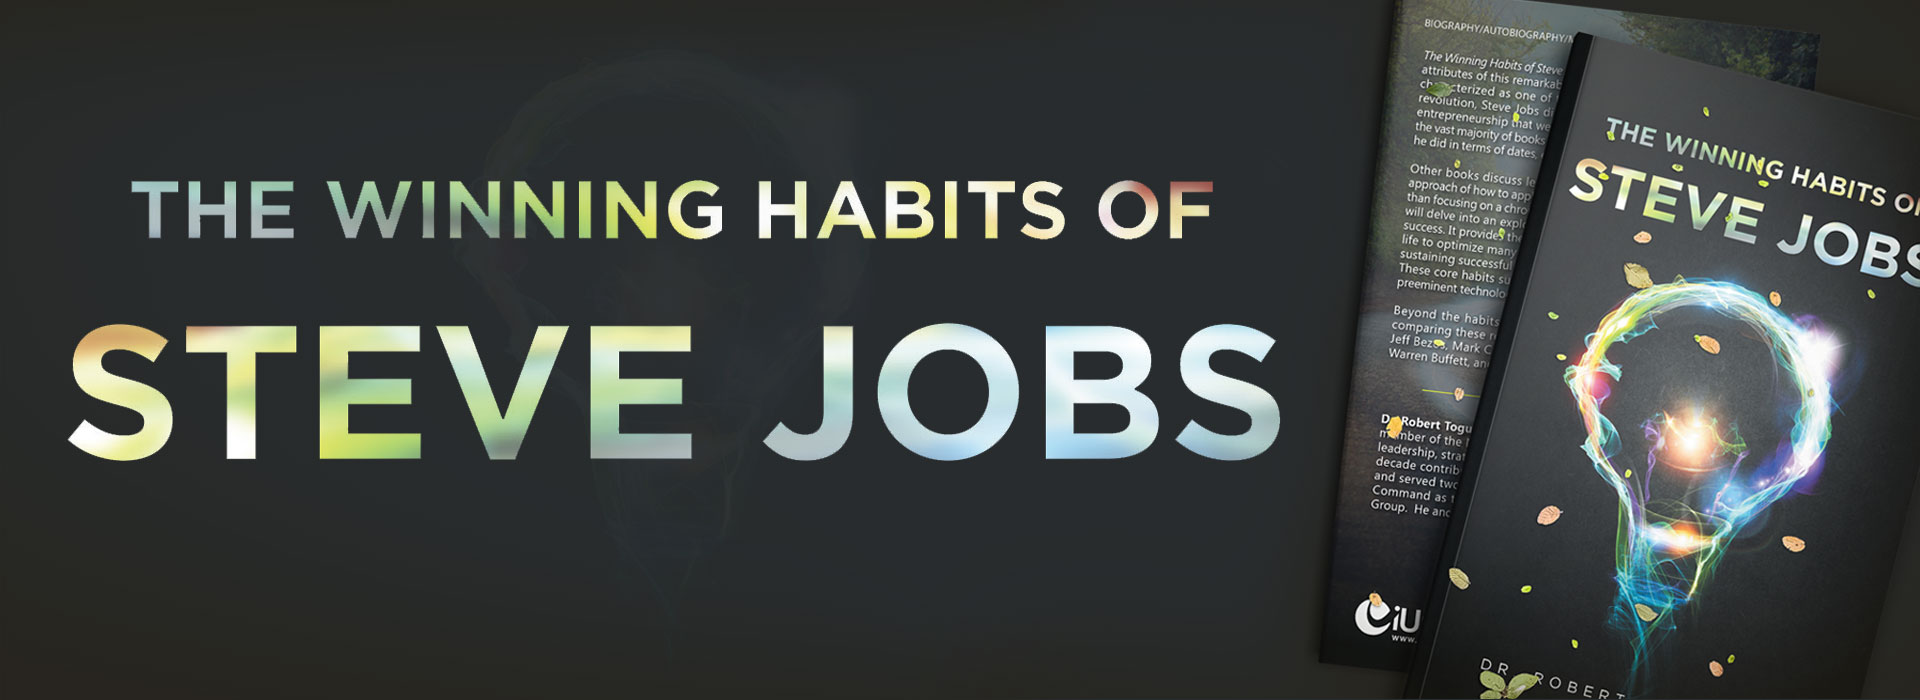 The Winning Habits of Steve Jobs